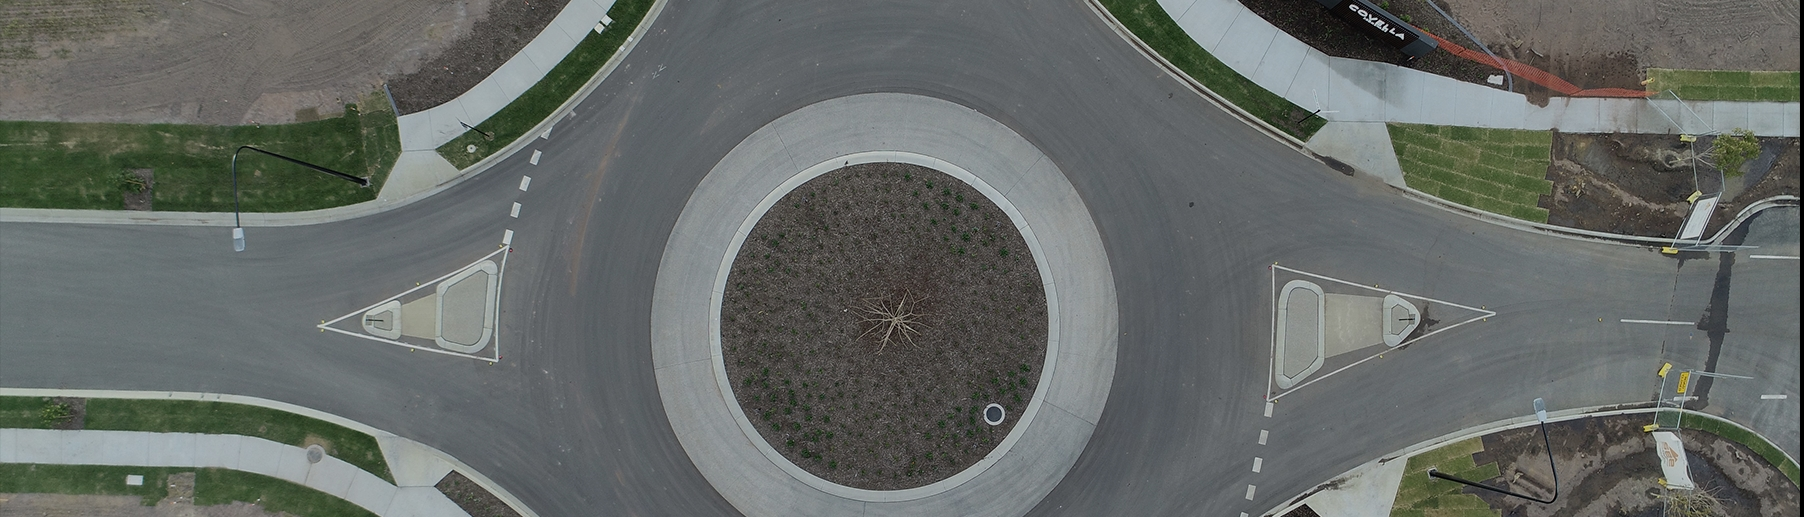 aerial view of roundabout